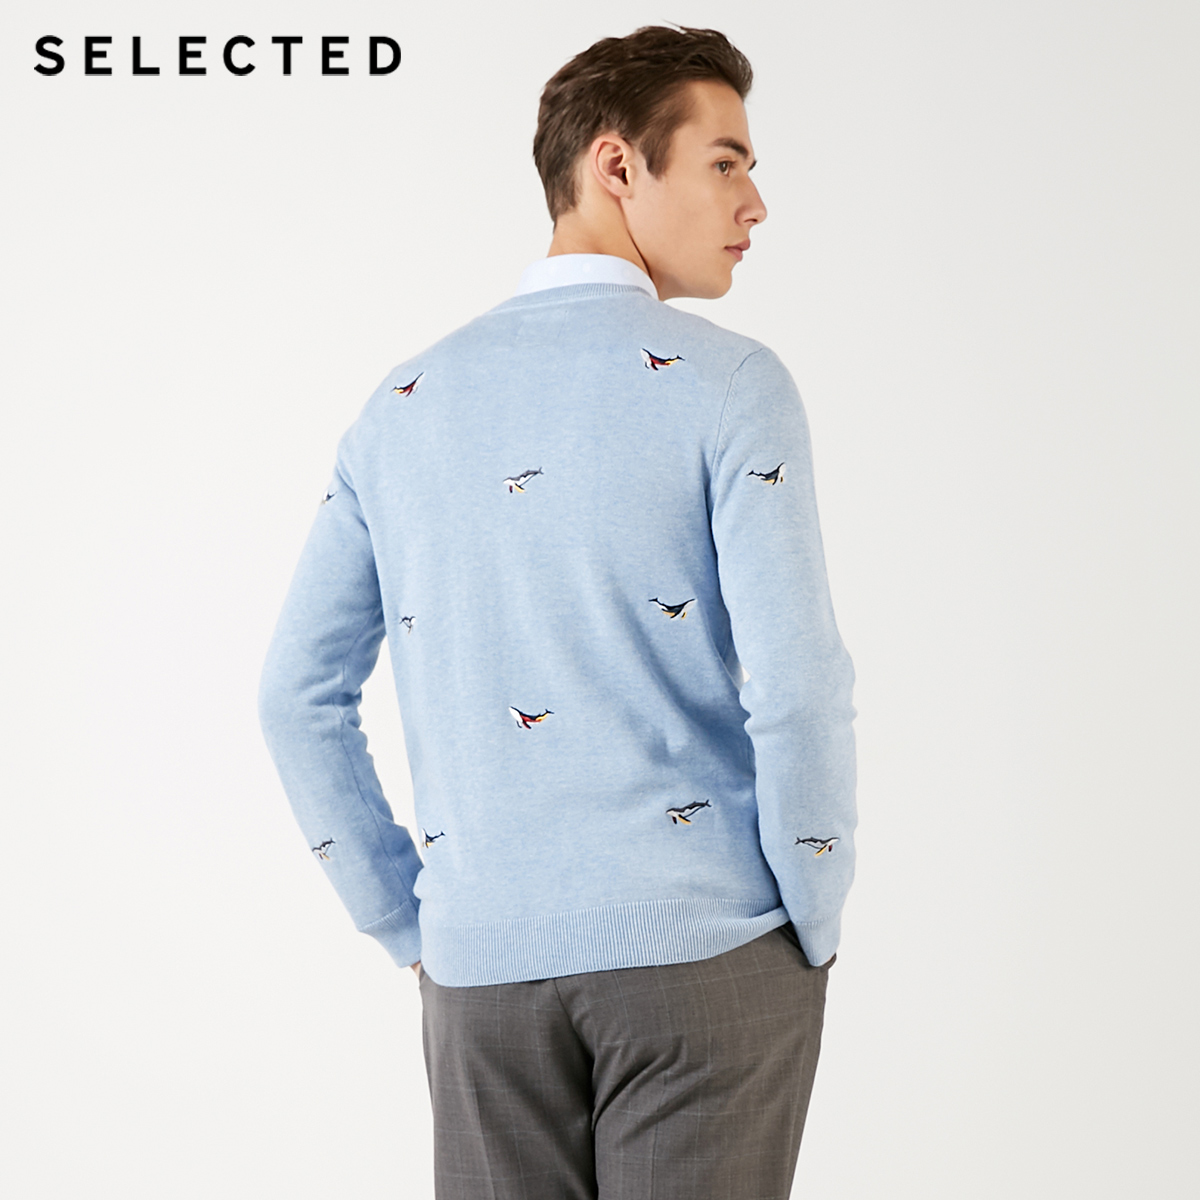 Image 4 - SELECTED Mens 100% Cotton Animal Embroidery Pullovers Sweater New Casual Knit Clothes C  419124539Pullovers